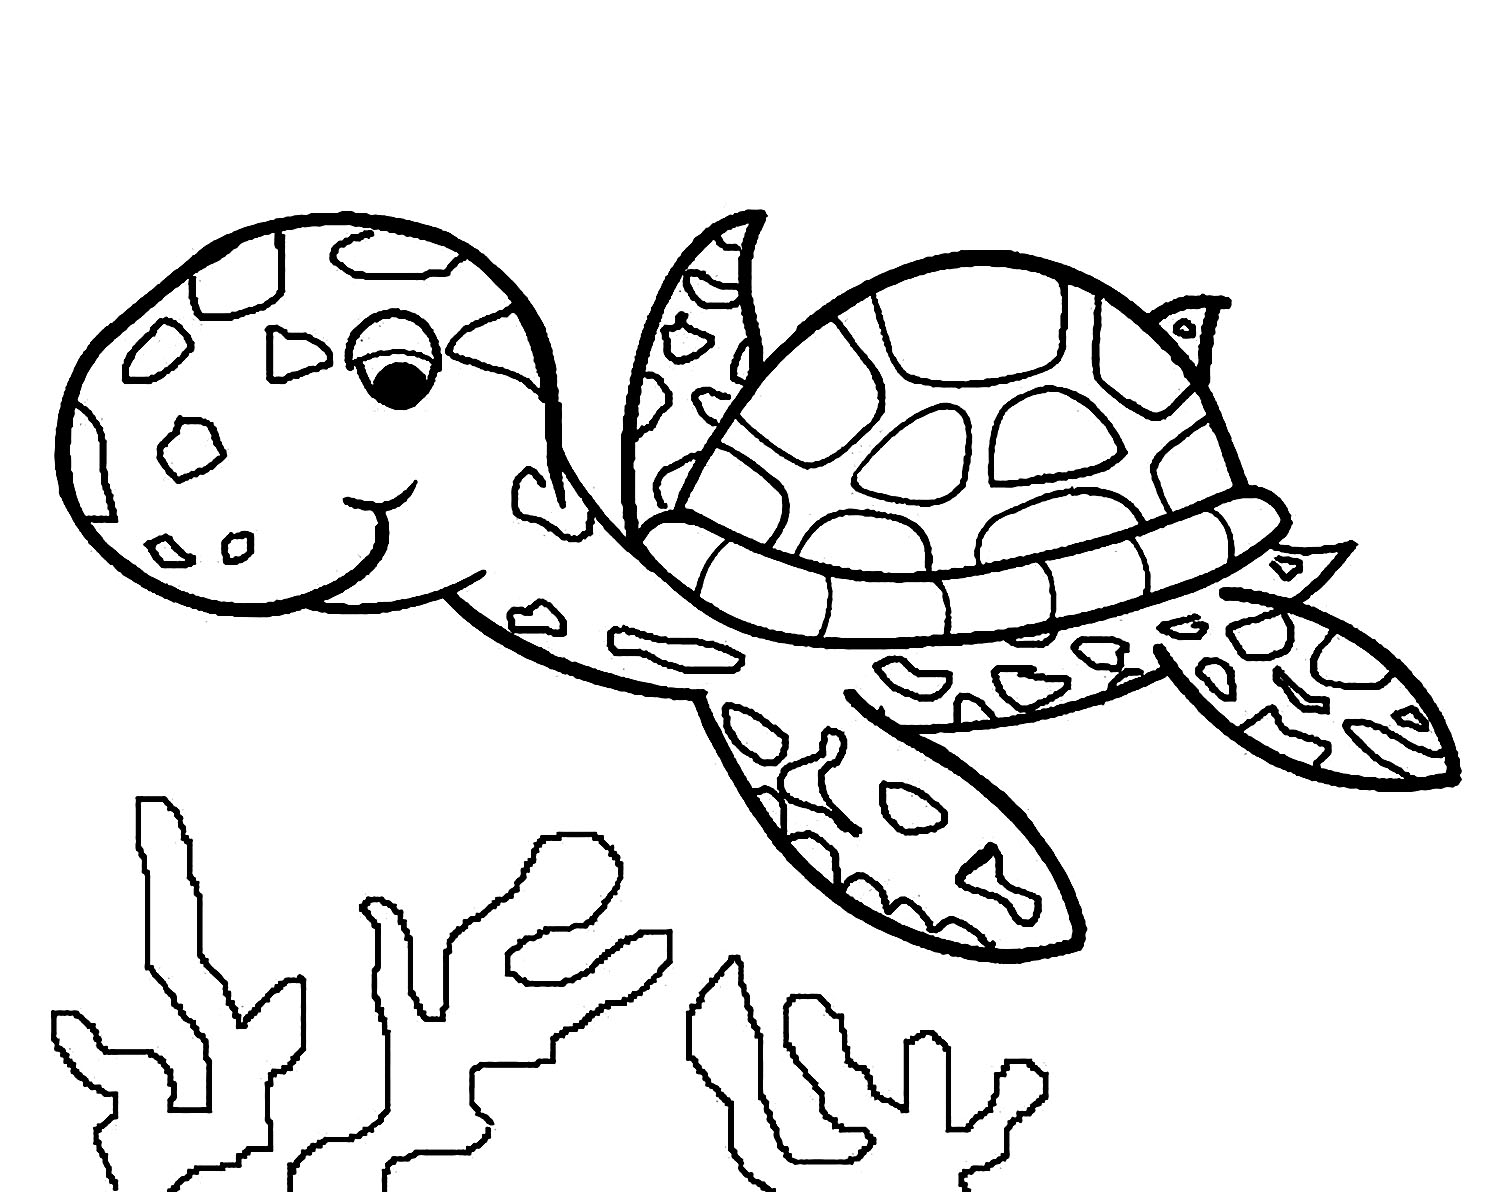 coloring pages of turtle turtles coloring pages download and print turtles turtle coloring of pages